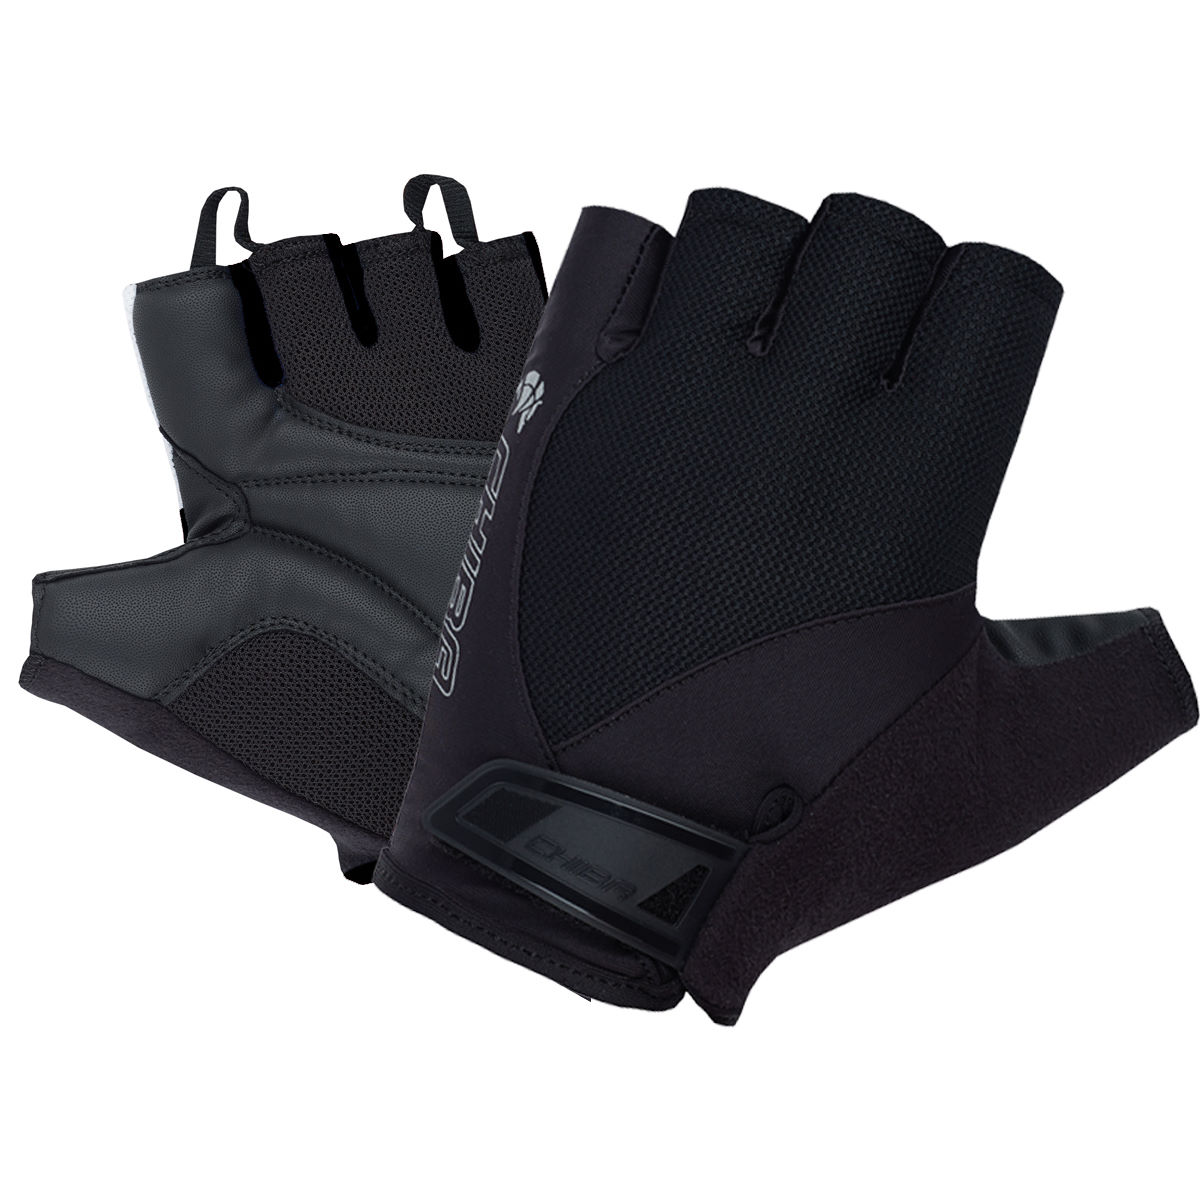 Chiba Sport Pro All-Round Mitts - Guantes